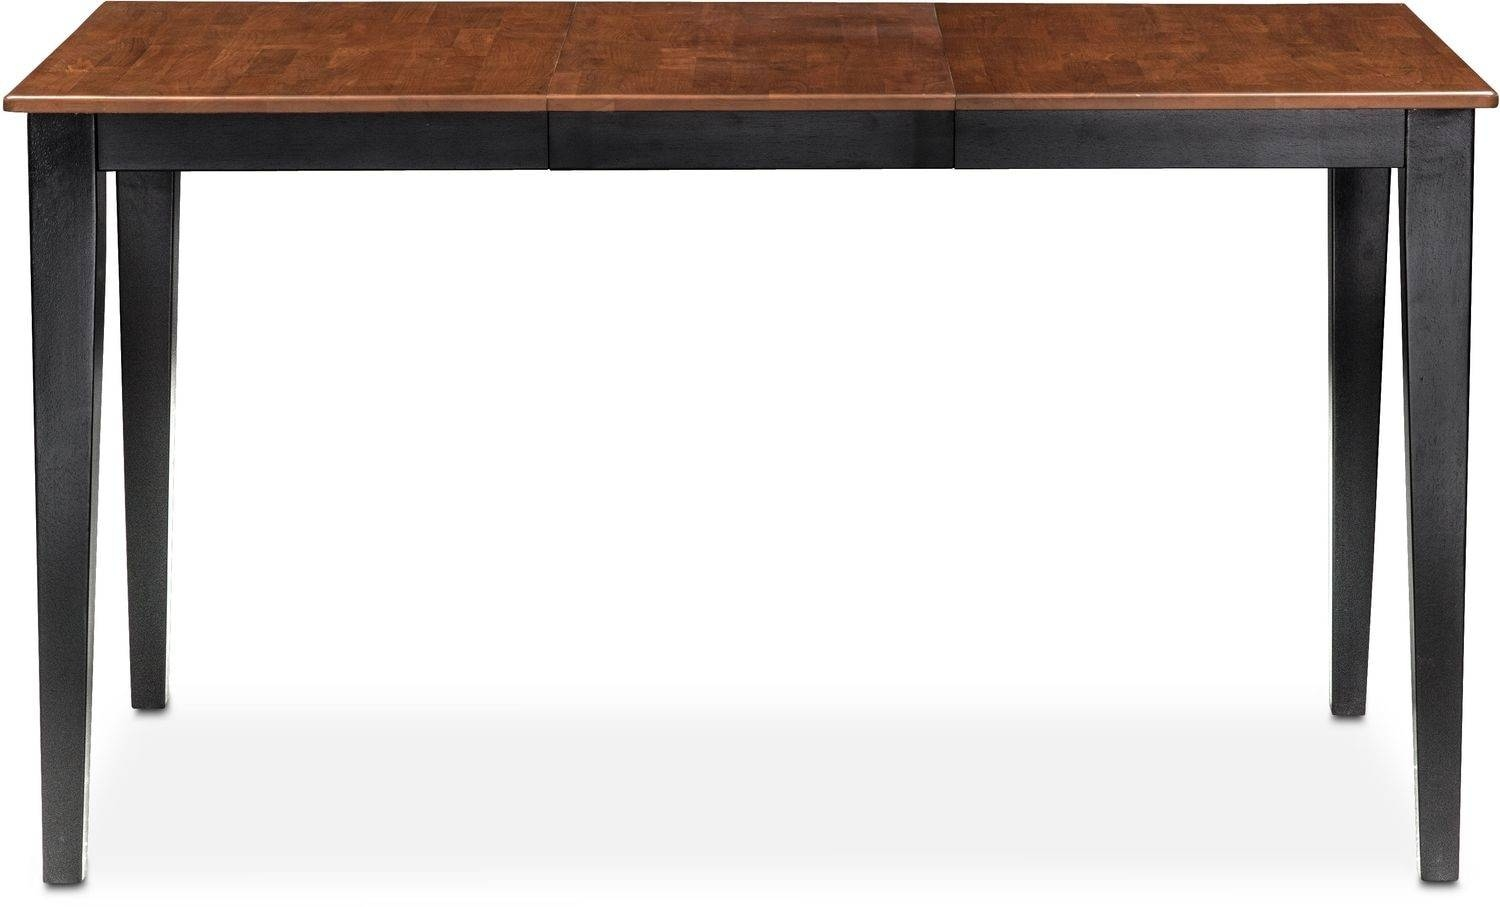 Nantucket Counter-Height Table - Black And Cherry | Value City throughout Counter Height Sofa Tables (Image 6 of 15)